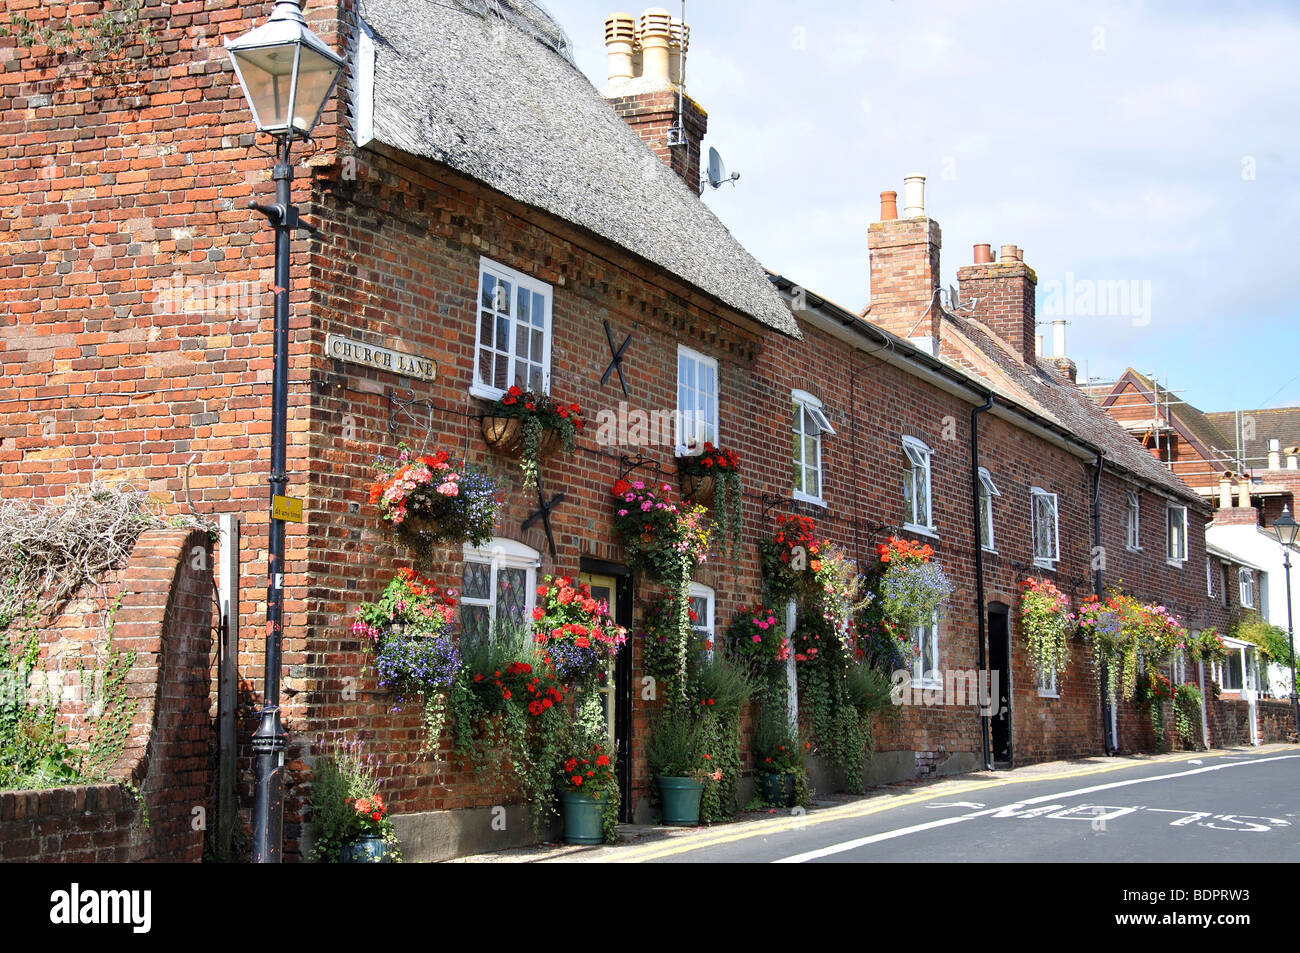 Church Lane, Christchurch, Dorset, England, United Kingdom - Stock Image